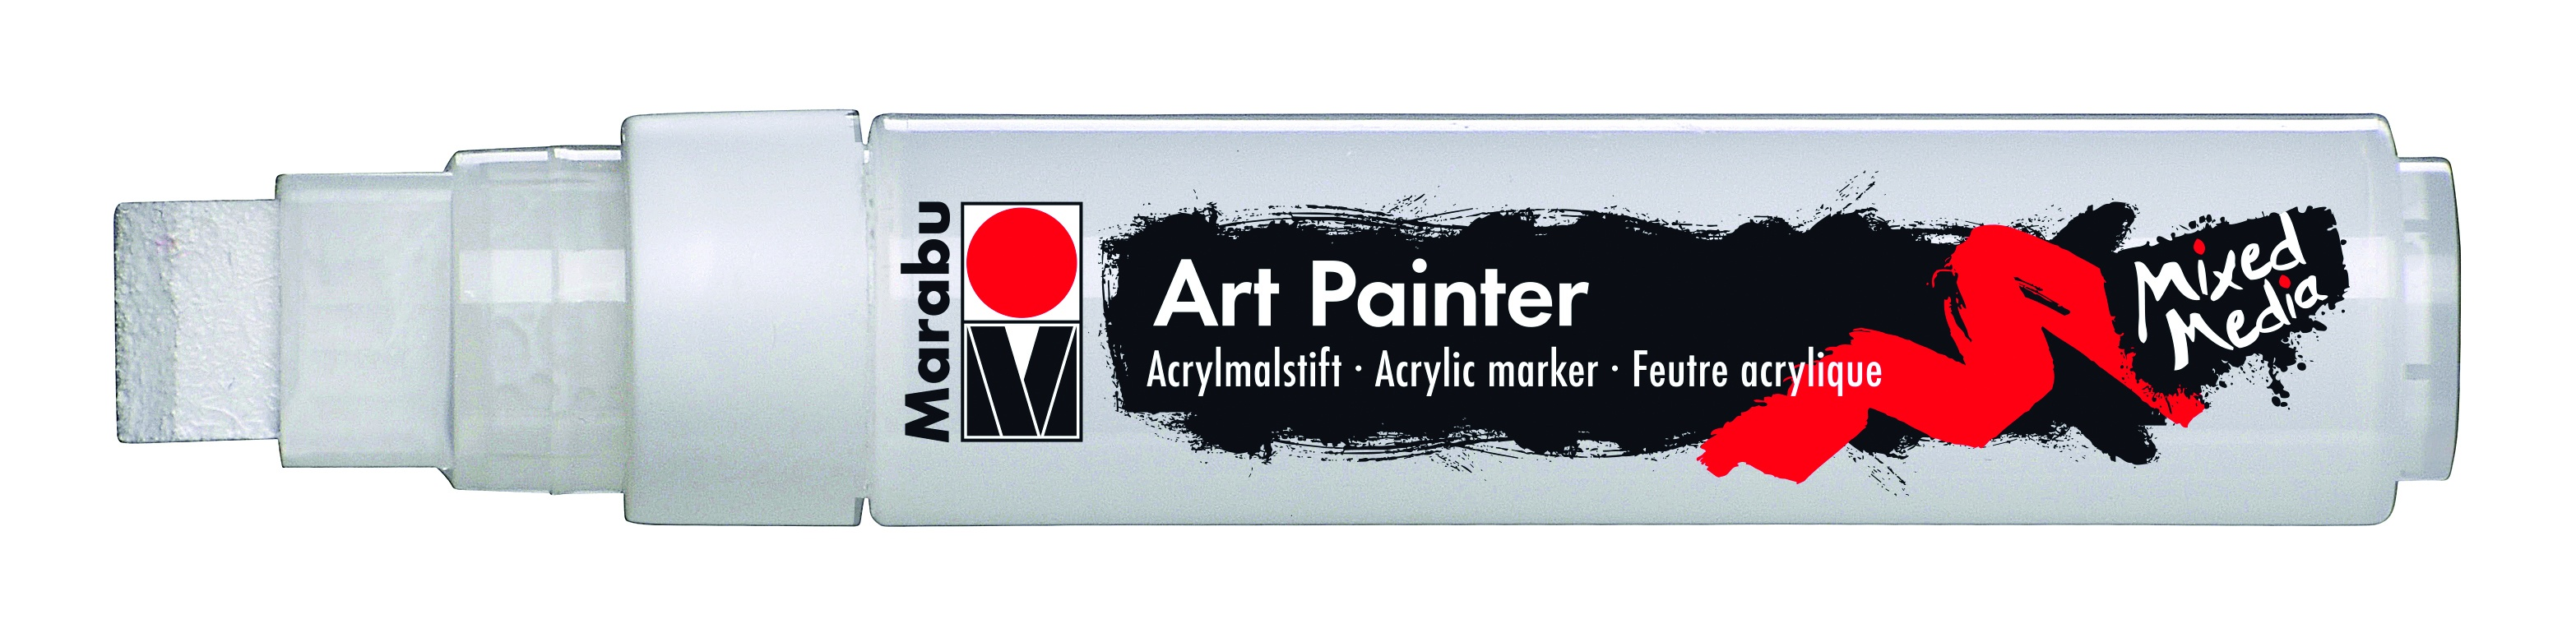 MARABU ART PAINTER ACRYLIC  15MM ŻÓŁTY 220